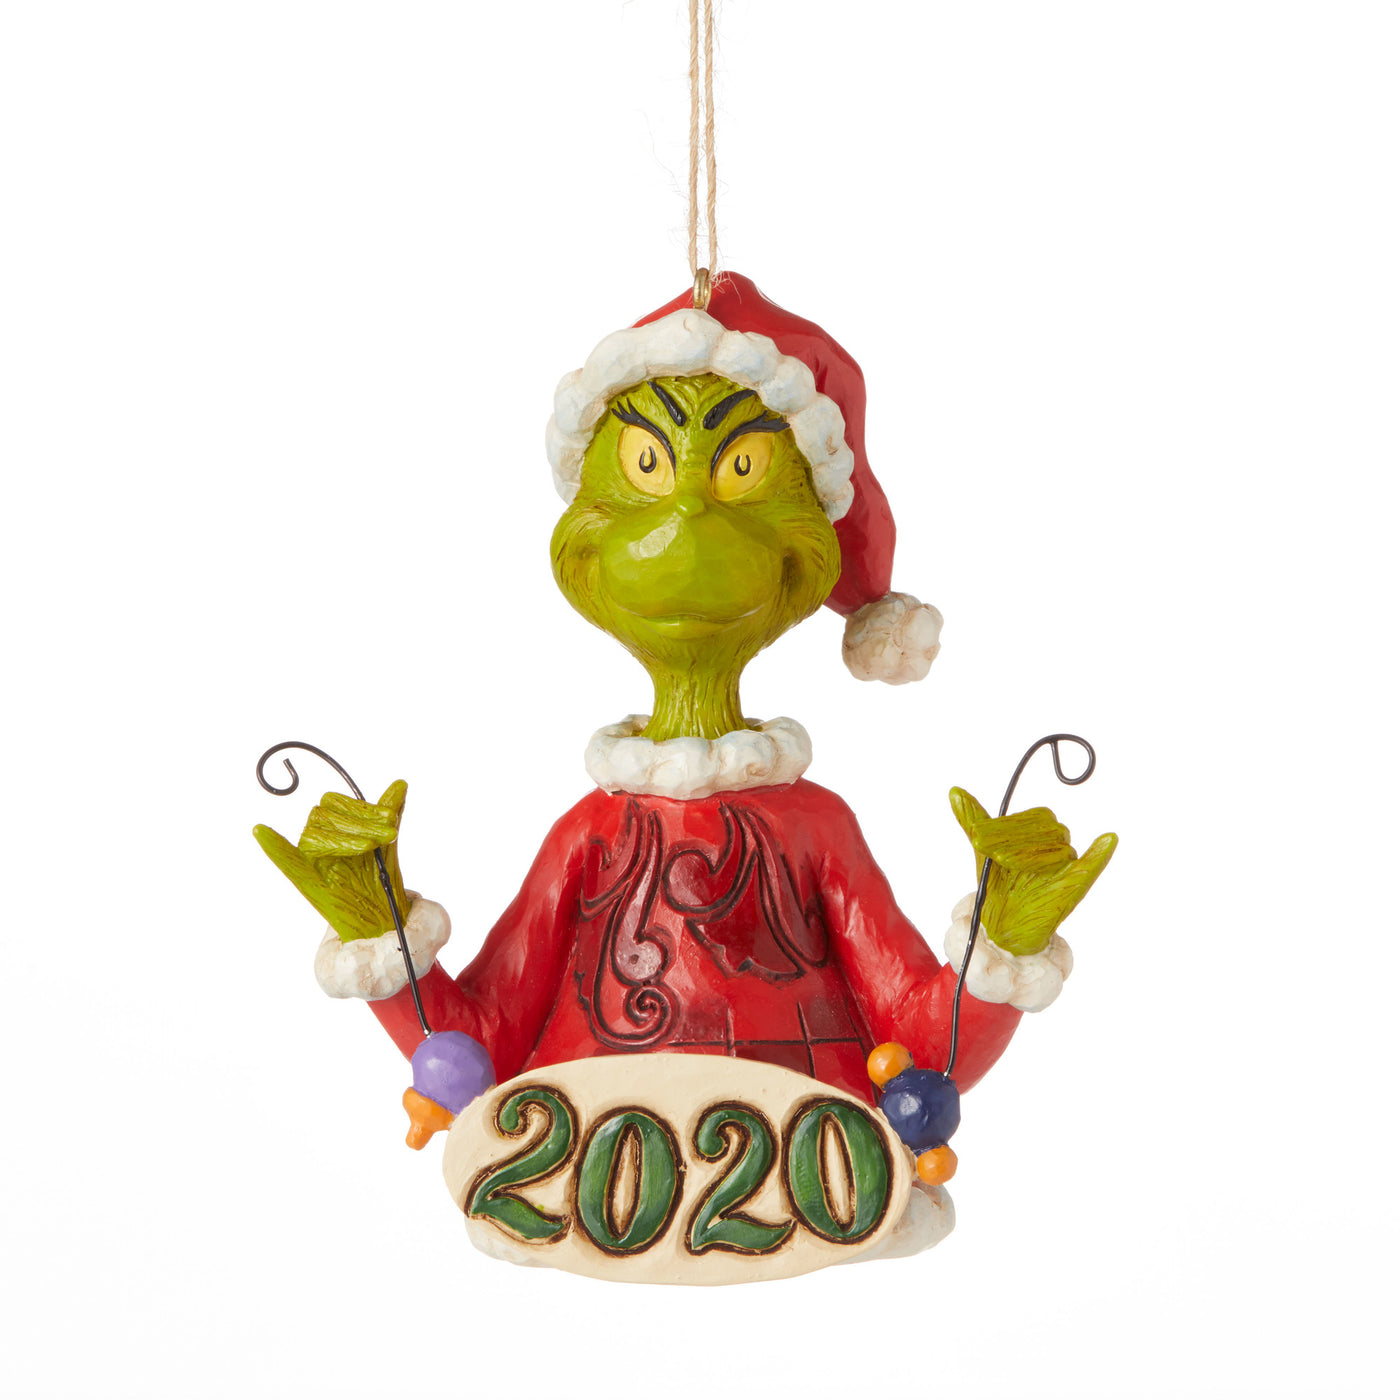 Jim Shore 2020 Christmas Ornament Jim Shore Grinch 2020 Dated Christmas Ornament New with Box – I